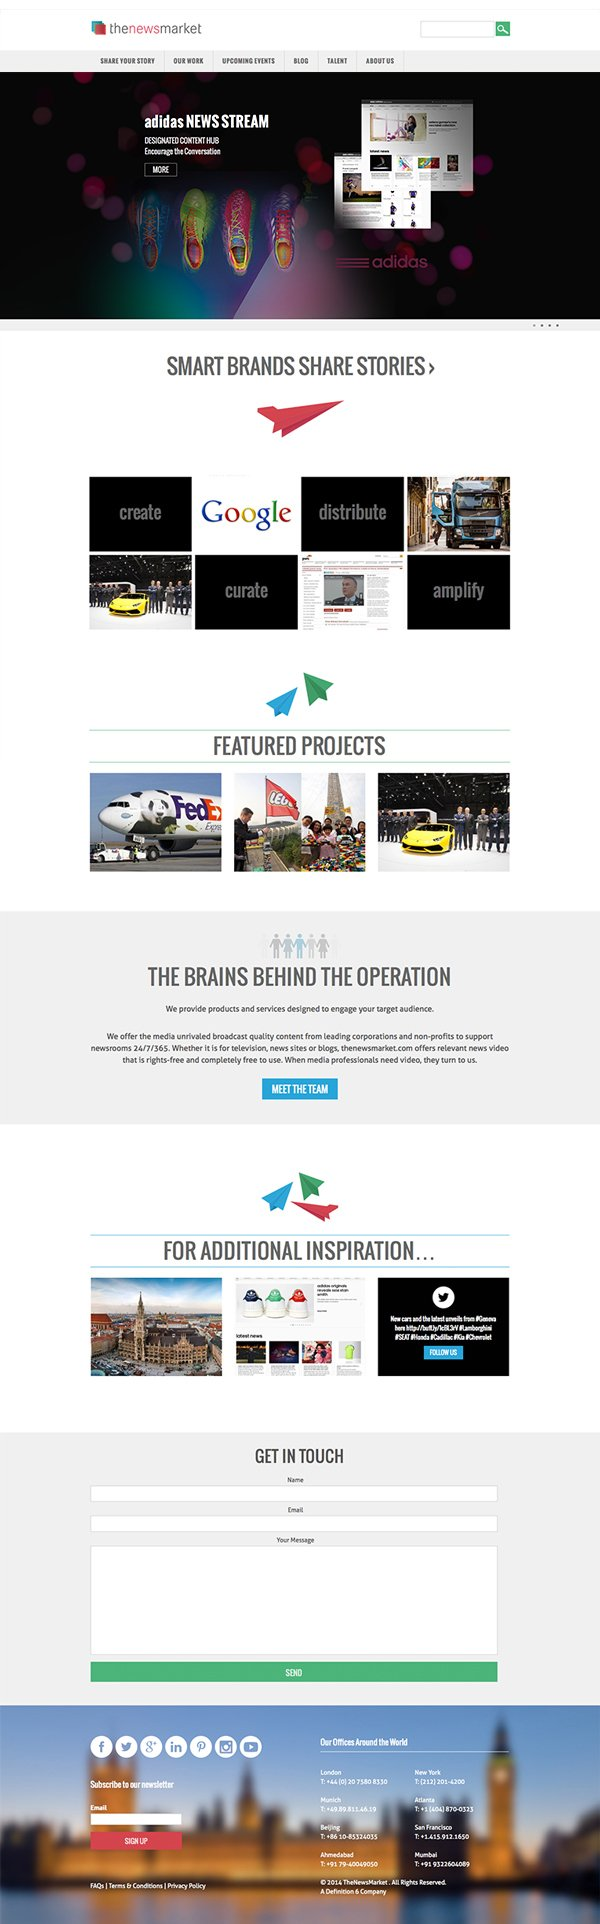 Corporate WordPress design, for the NewsMarket London